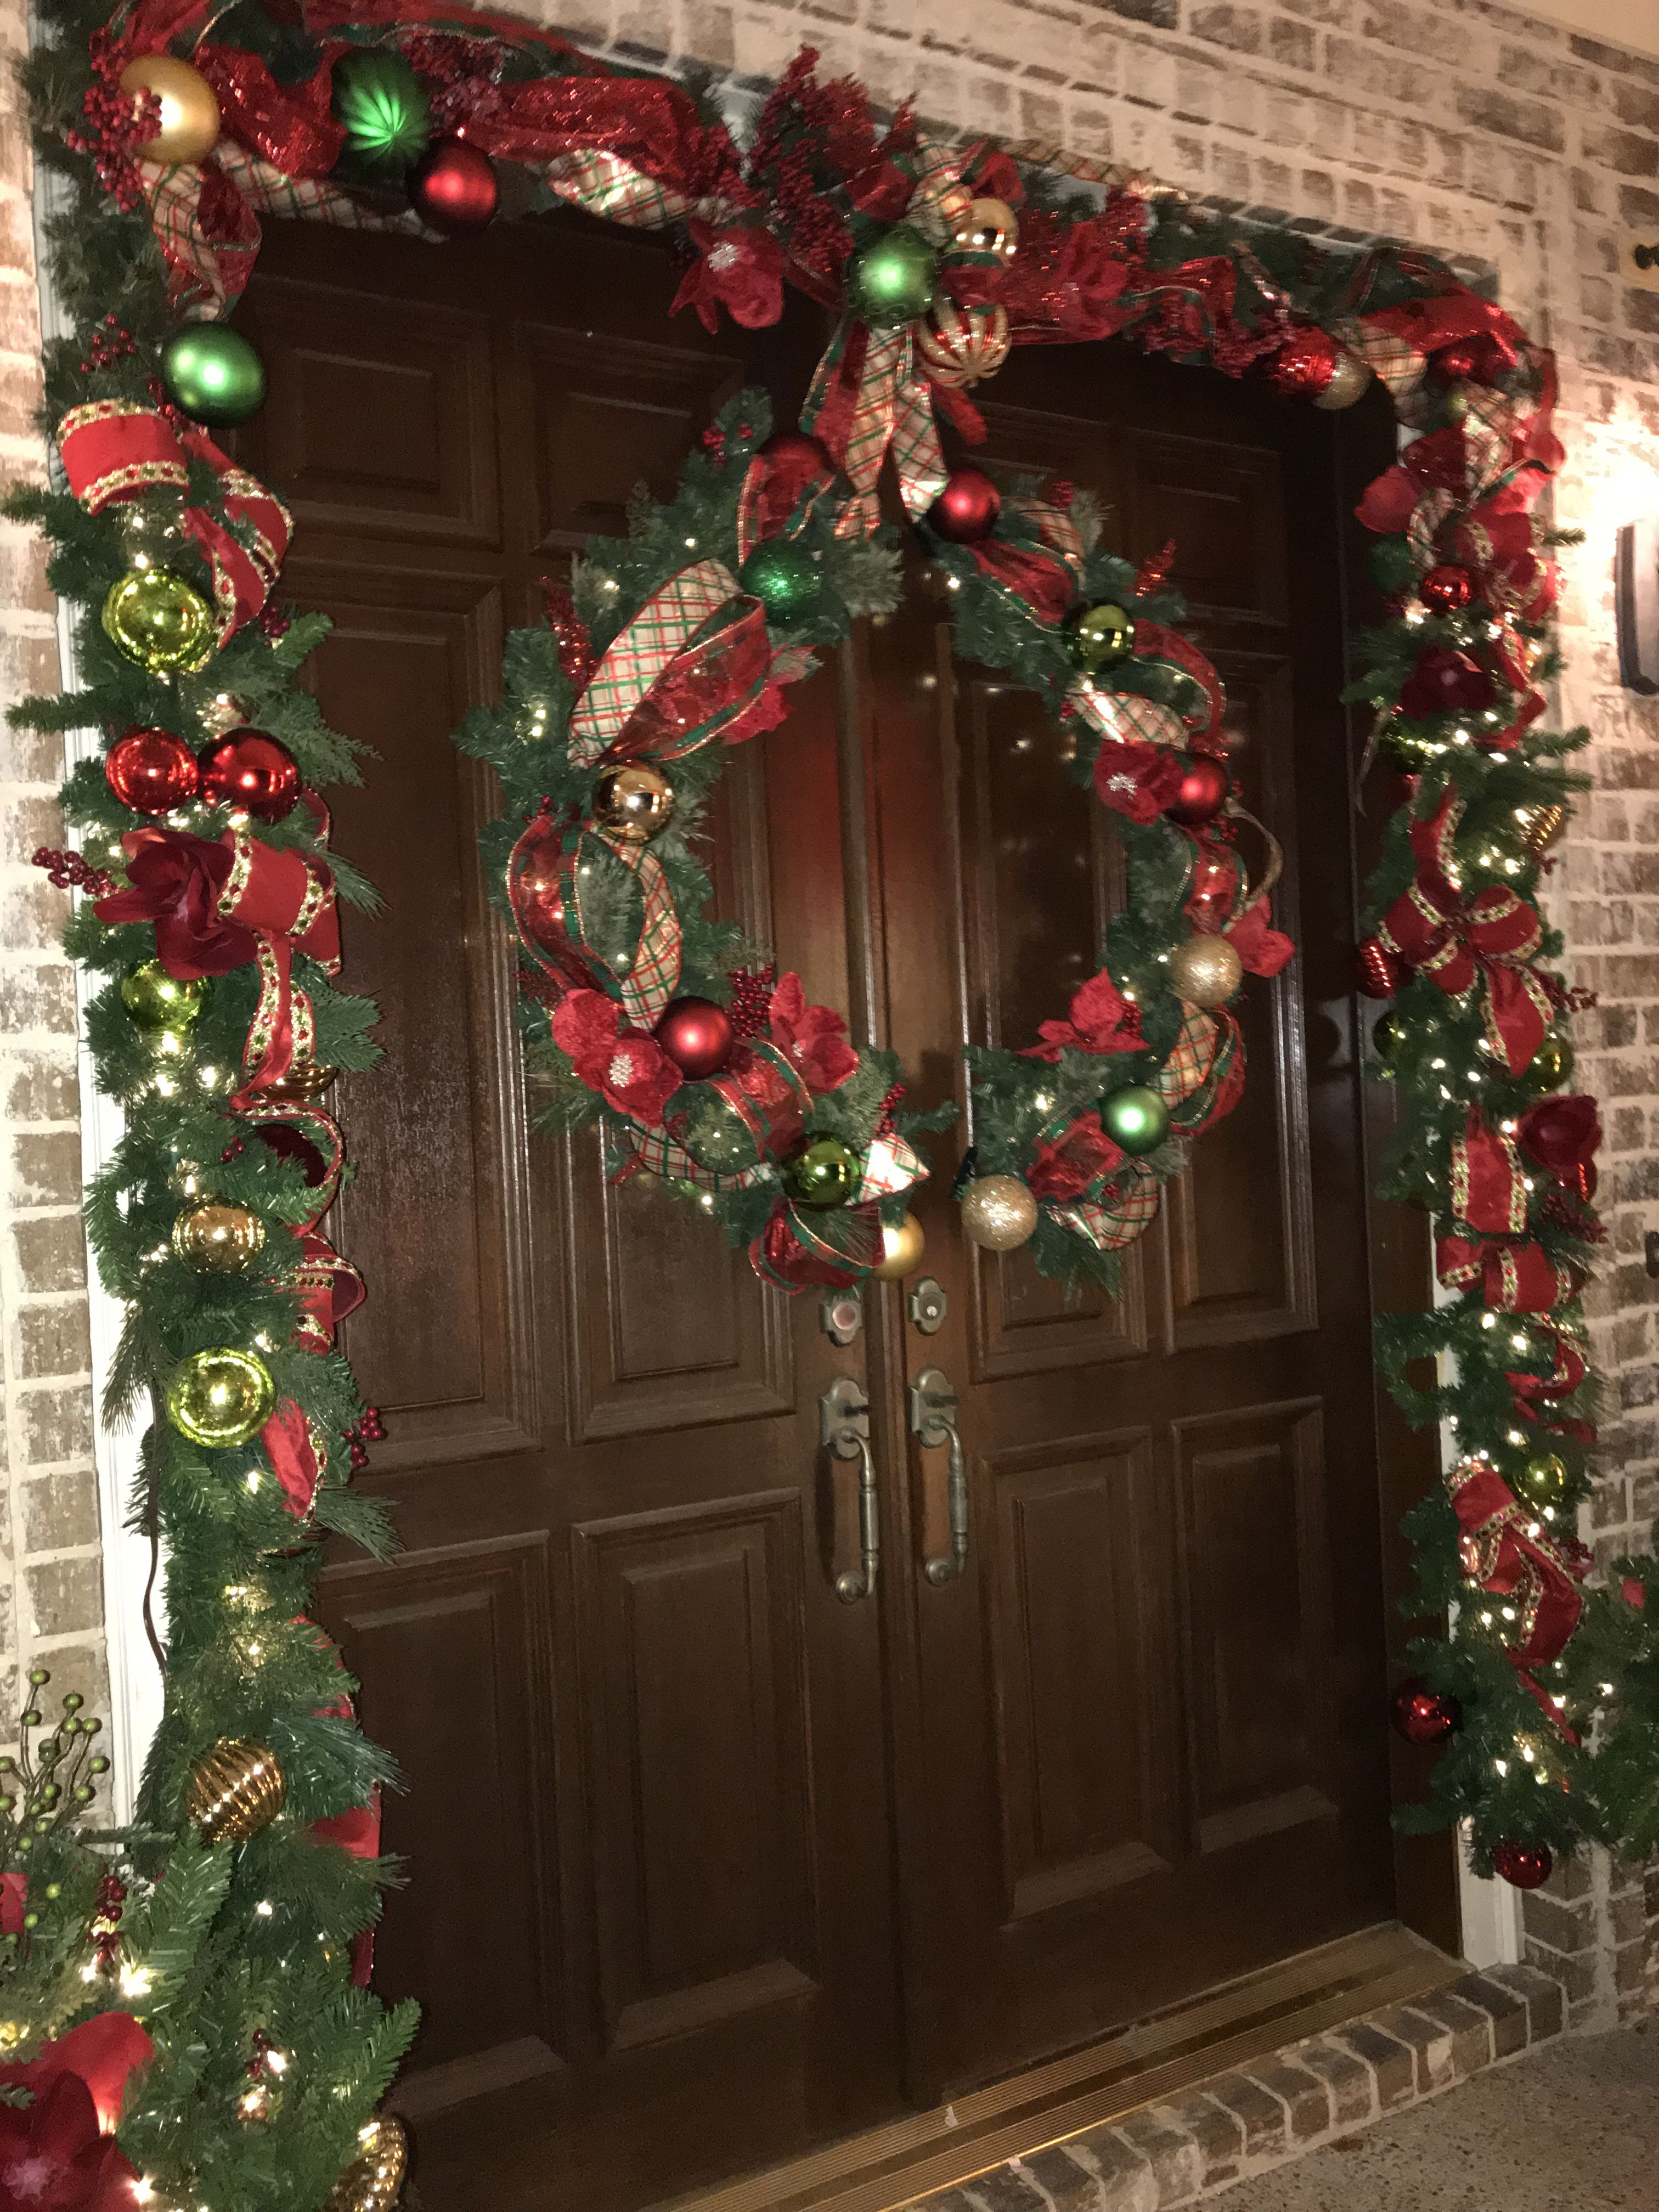 Double Doors Split Wreath Christmas Christmas Wreaths Christmas Greenery Festival Decorations